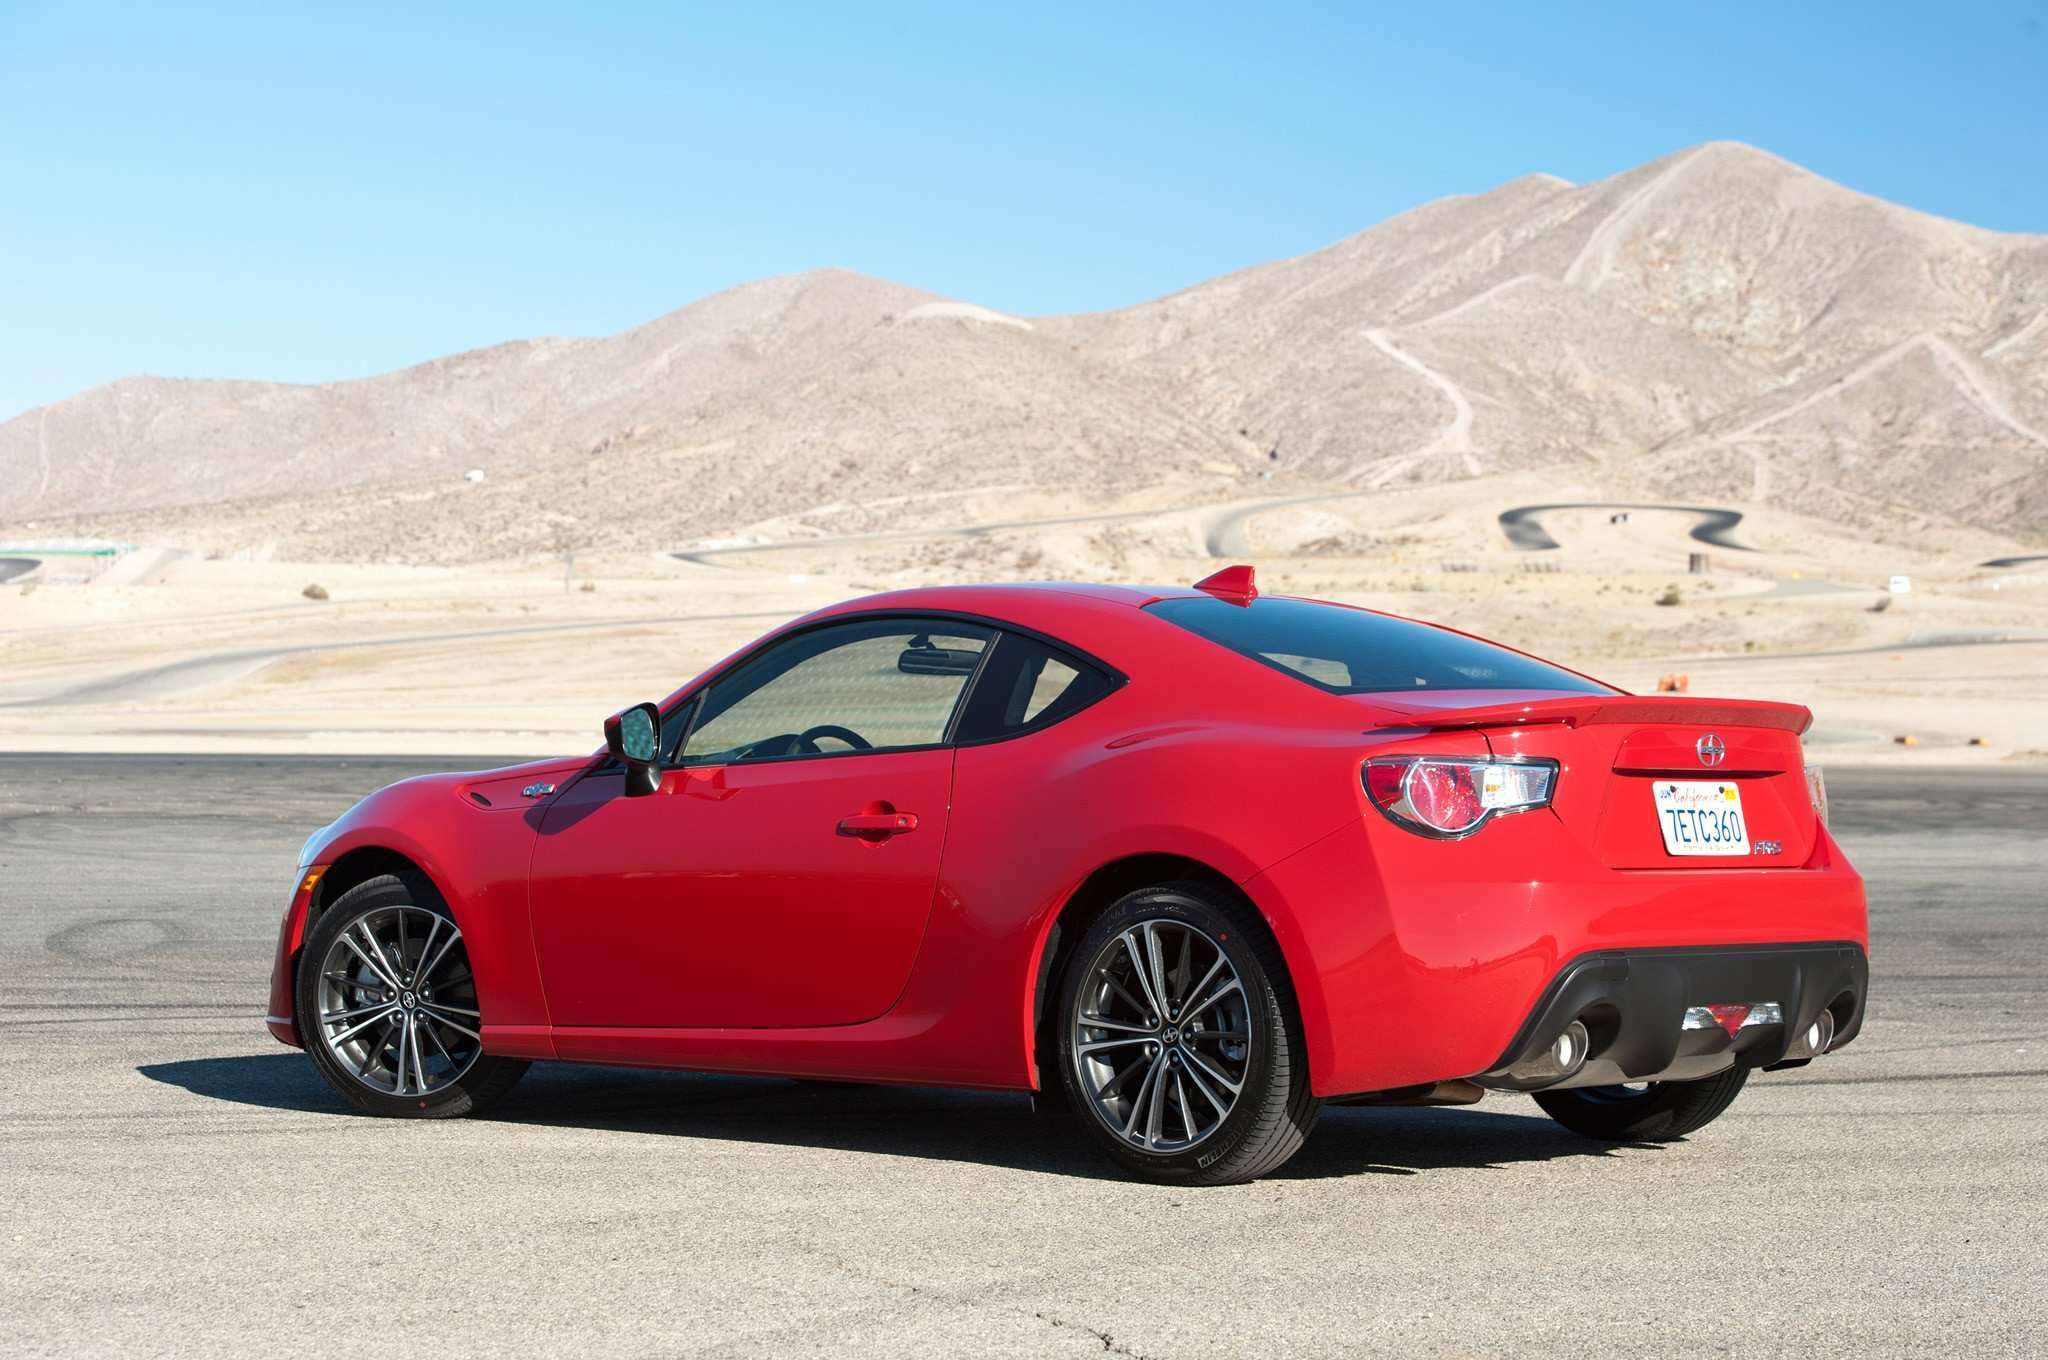 81 Concept of 2020 Scion Fr S Prices with 2020 Scion Fr S